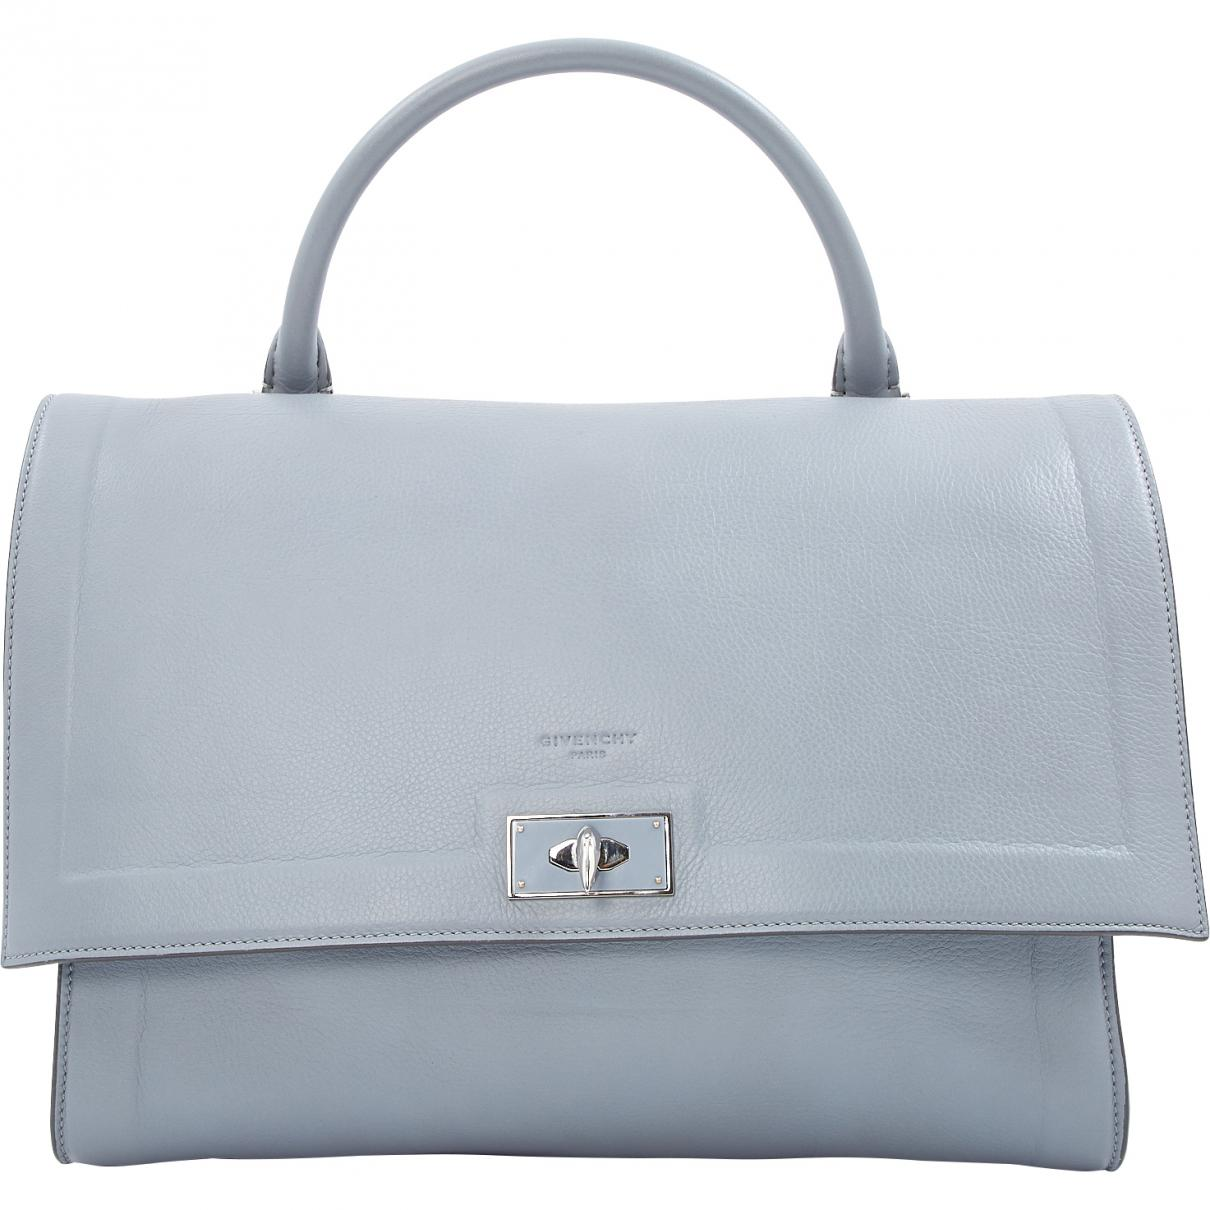 a897c6854e Givenchy Shark Leather Handbag in Gray - Lyst